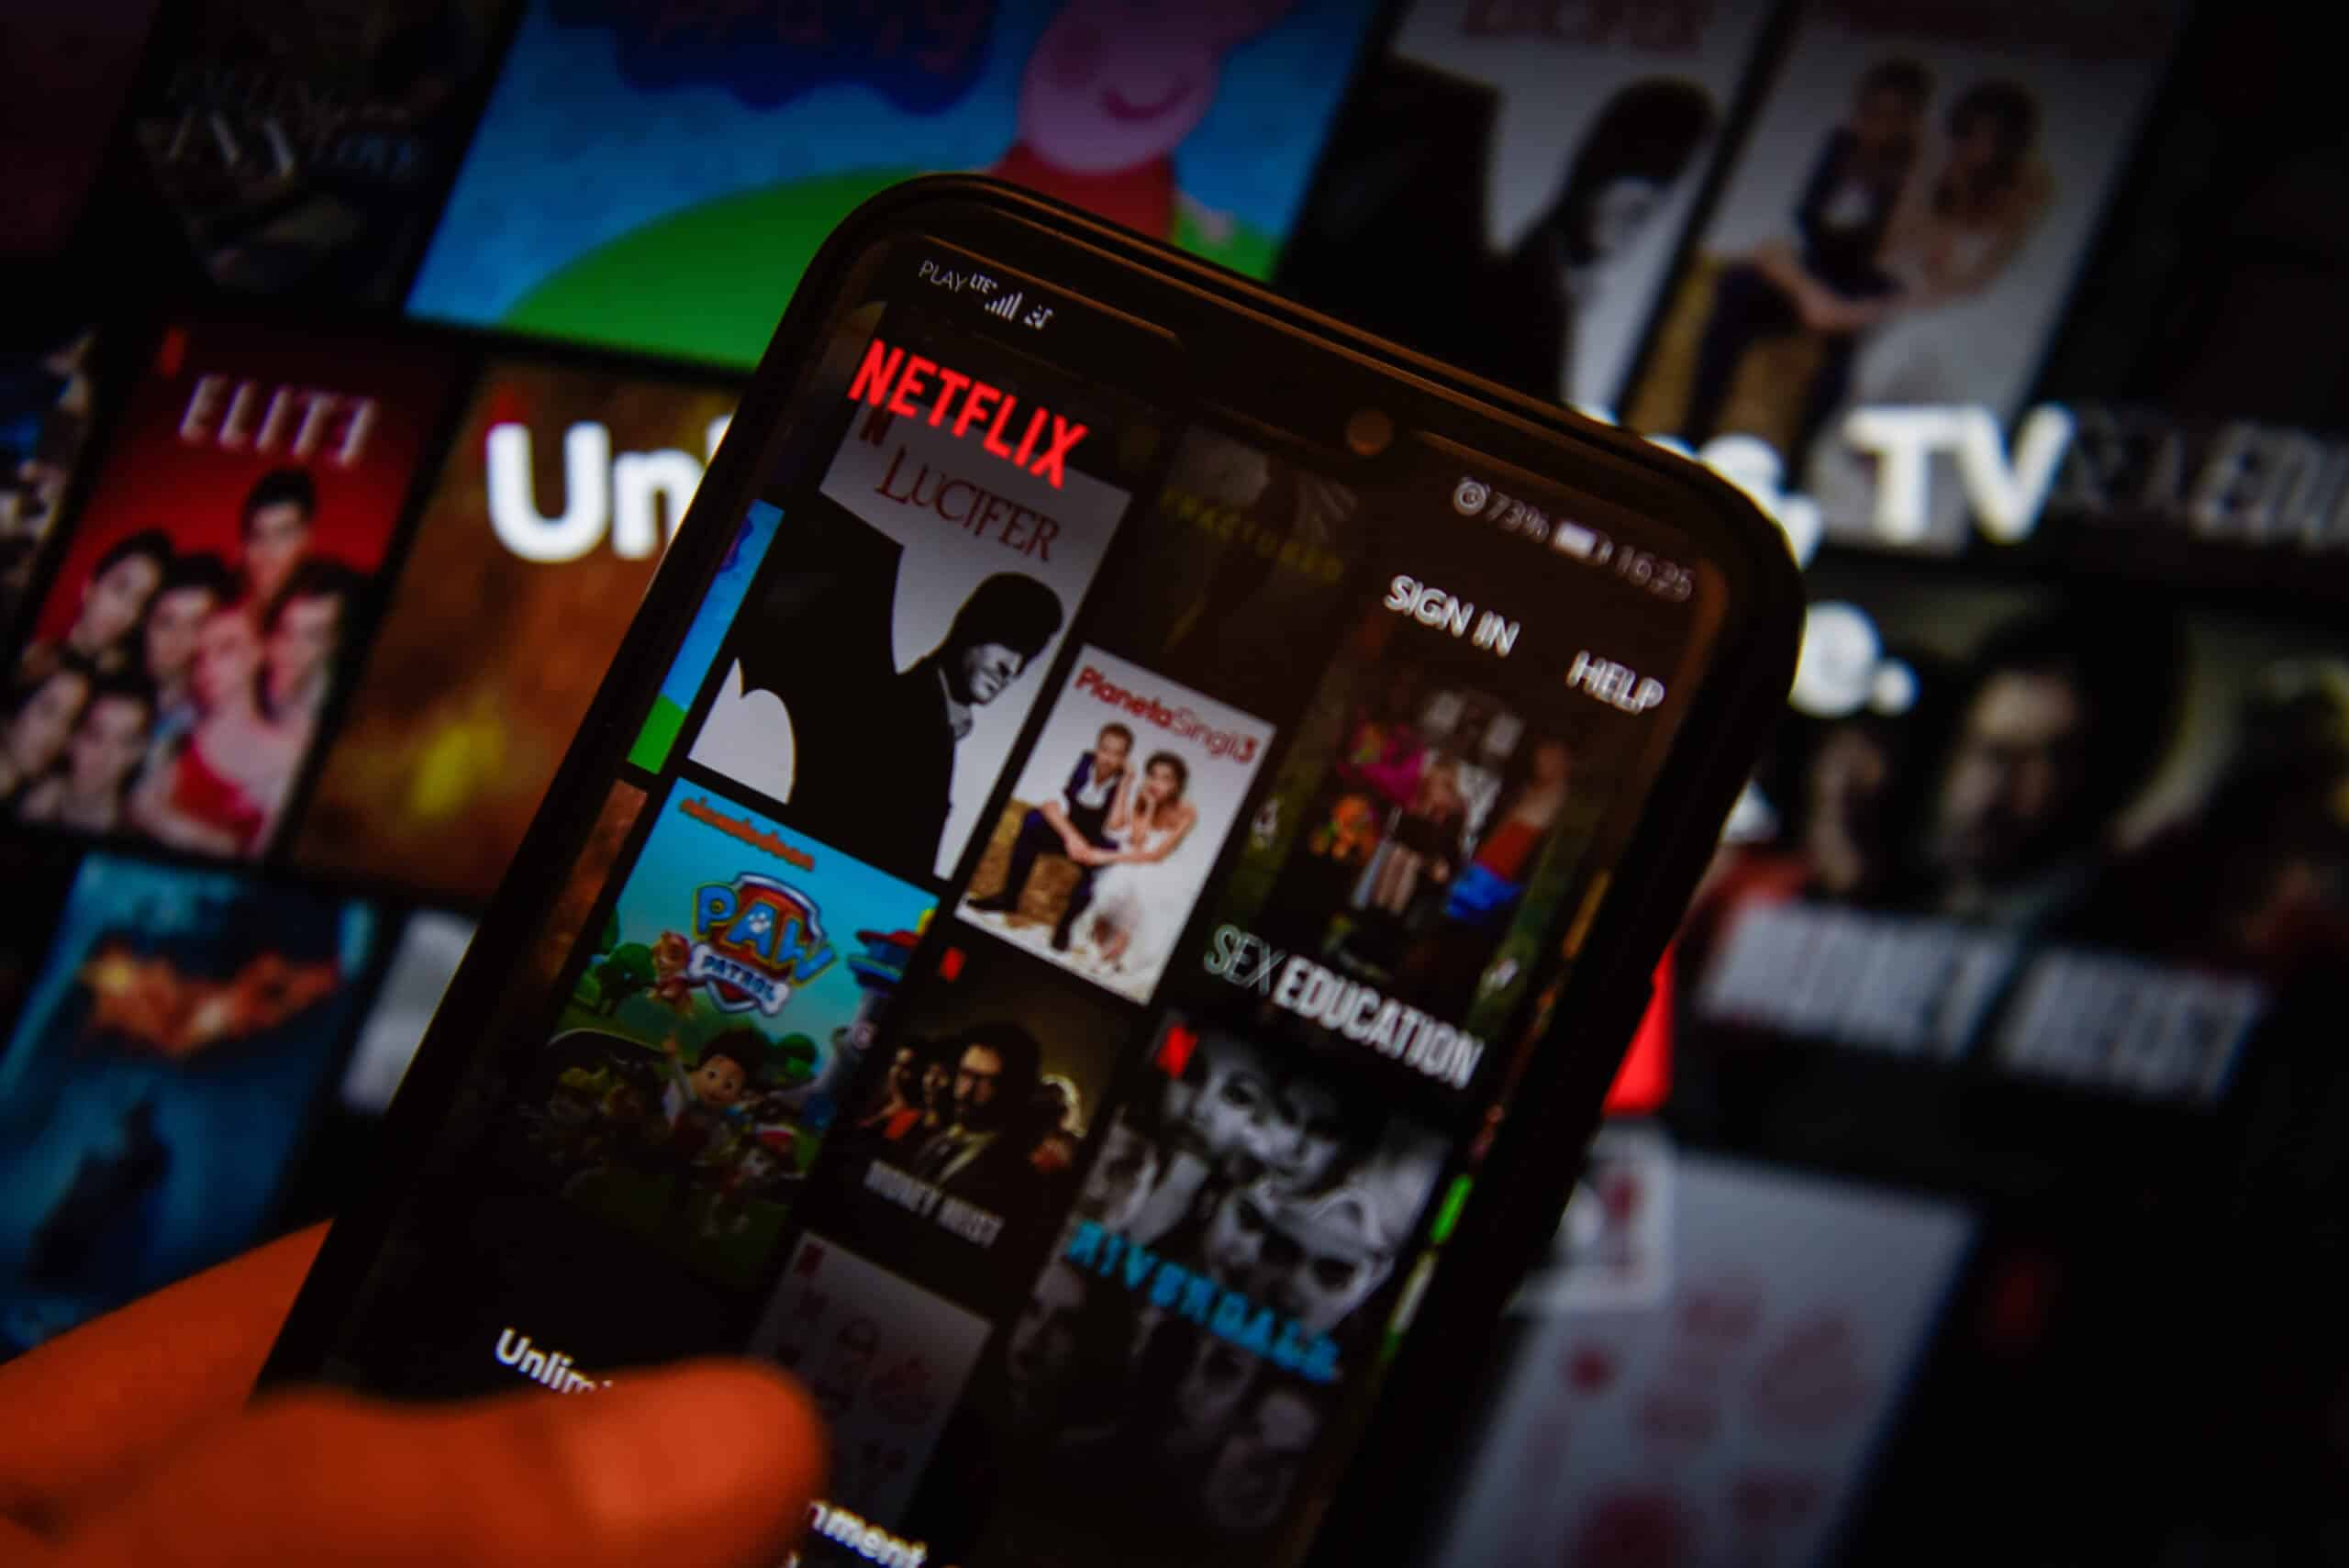 Netflix app for Android rolls out feature that prevents accidental skips and pauses